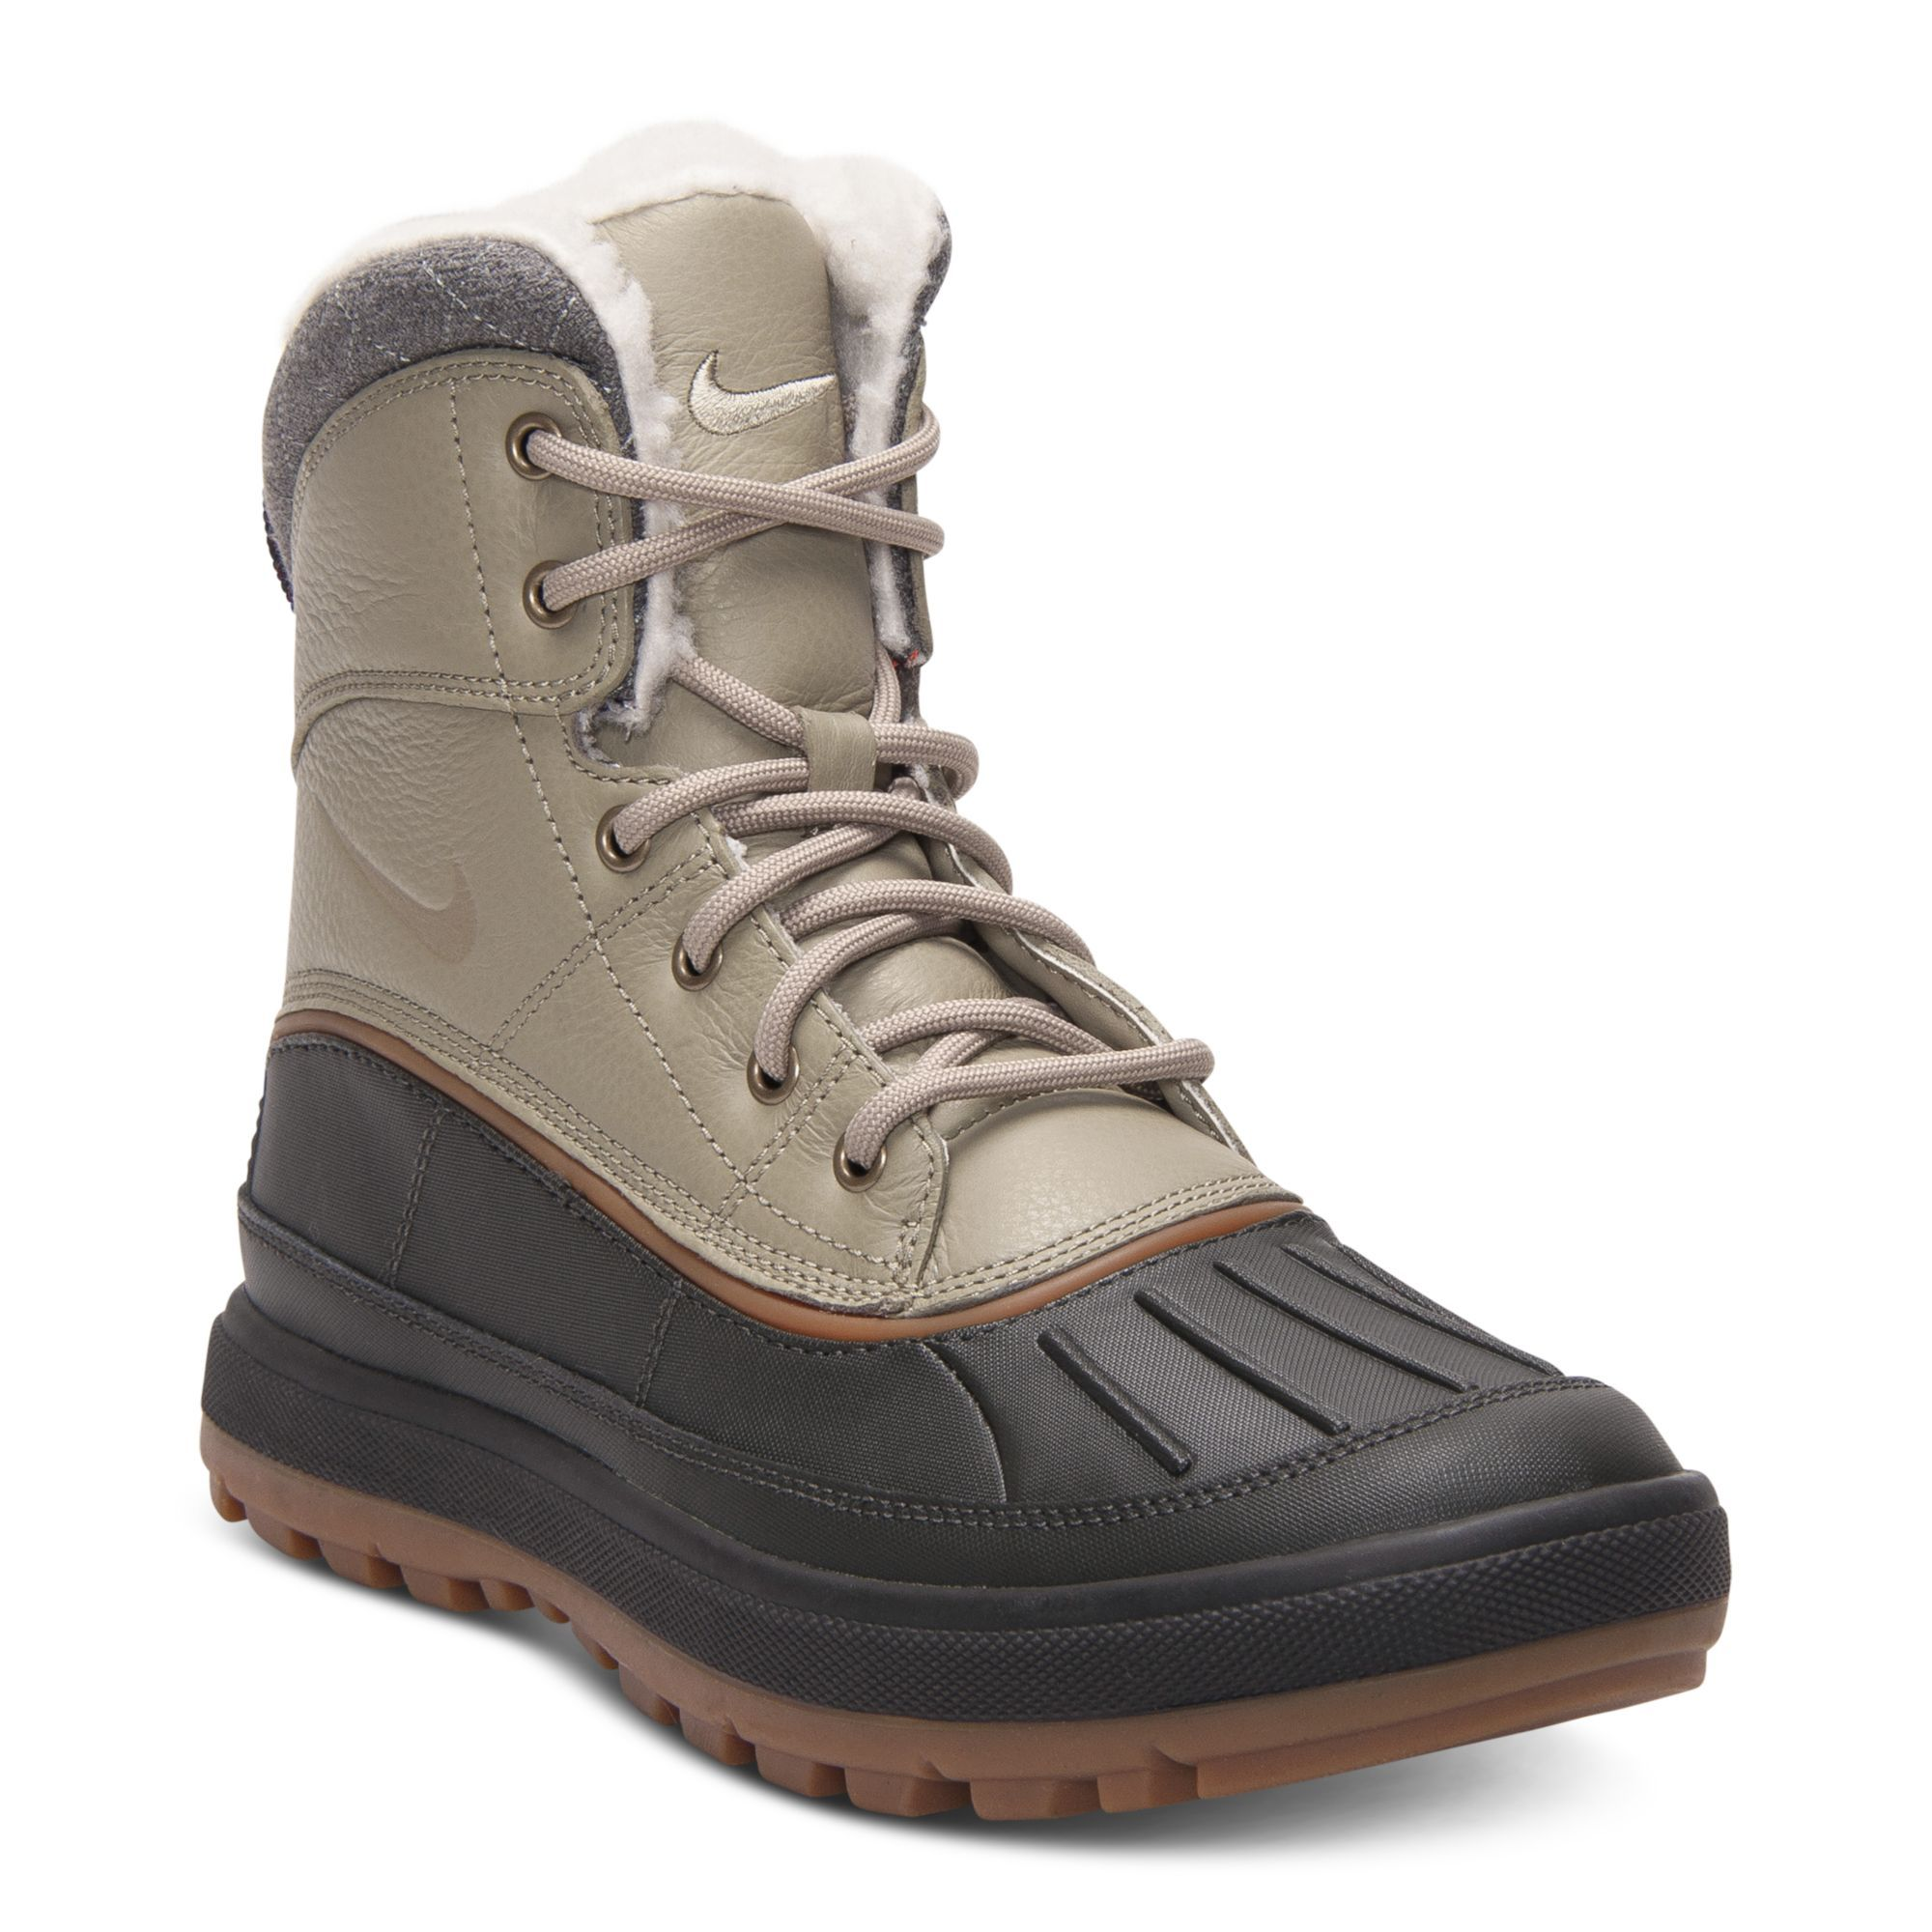 Trends For > Nike Acg Woodside Boots 2013 | Boots, Boots men ...